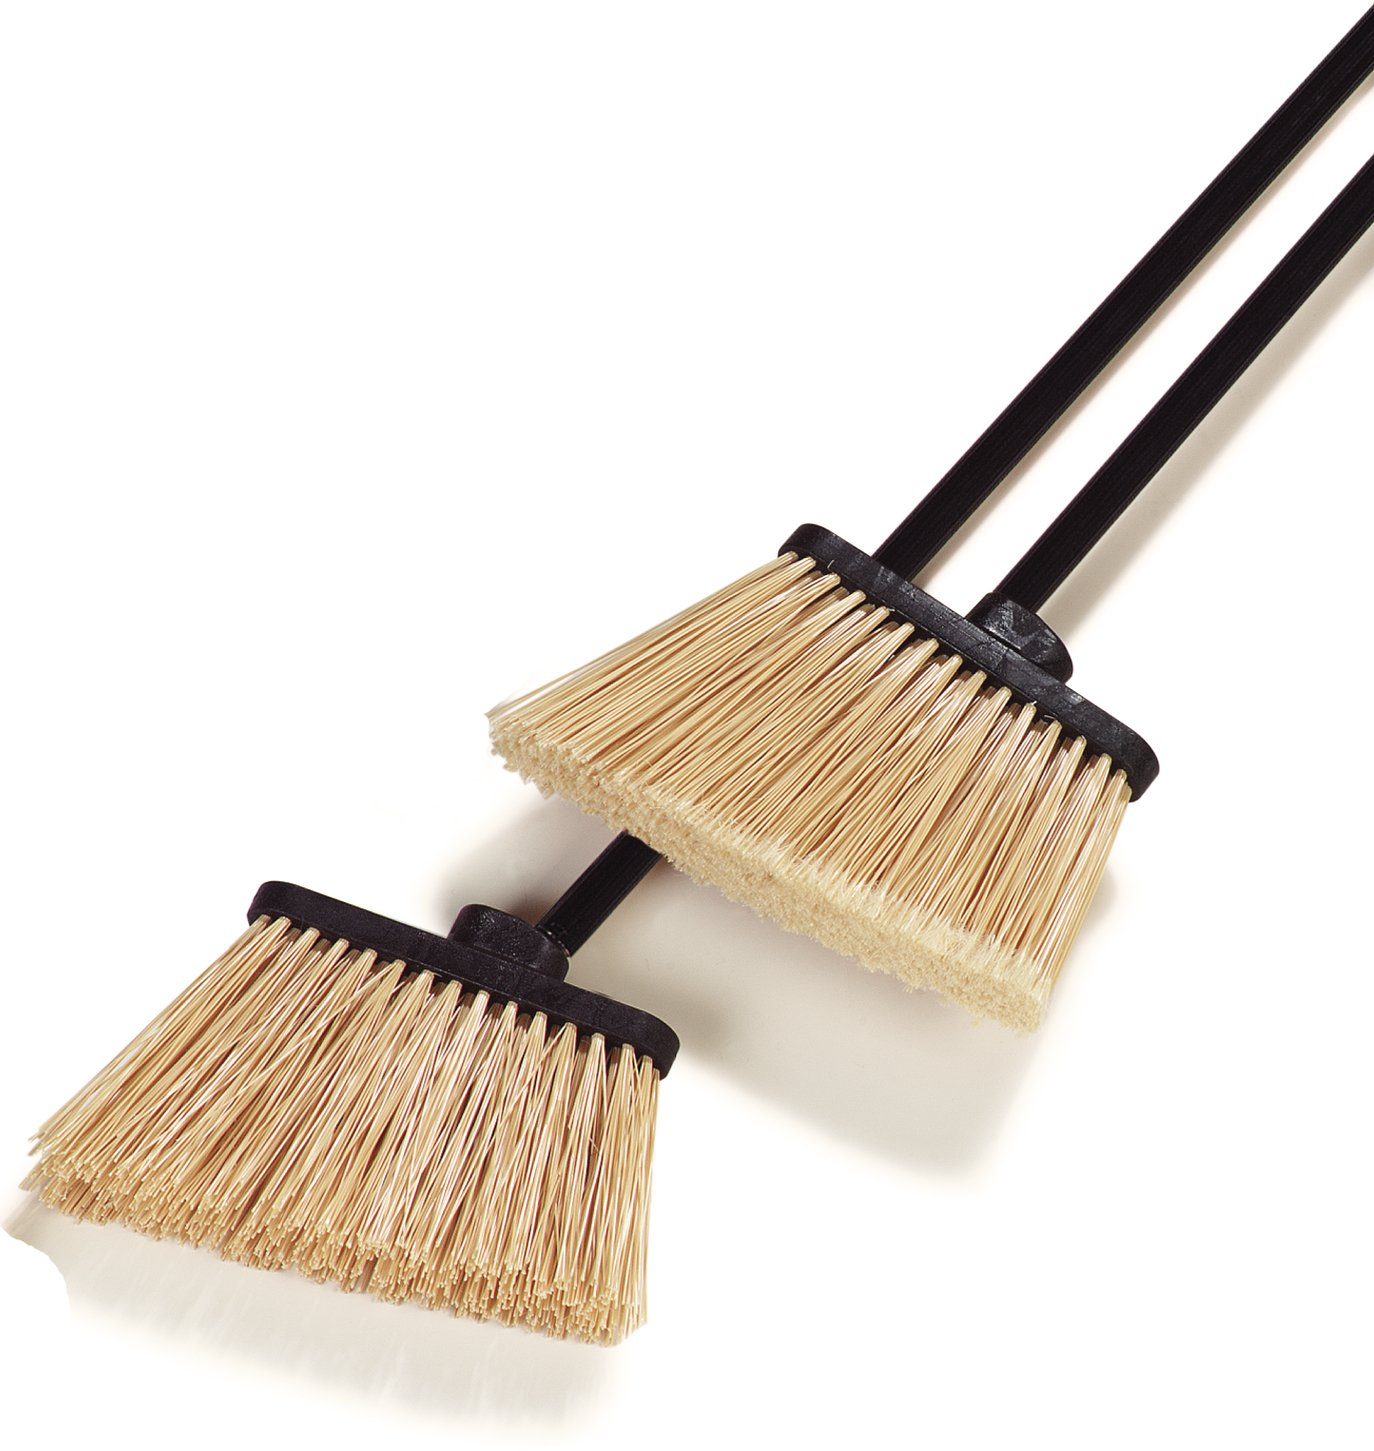 Carlisle 3686500 Duo-Sweep Flagged Angle Broom, 56'' Length by Carlisle (Image #13)